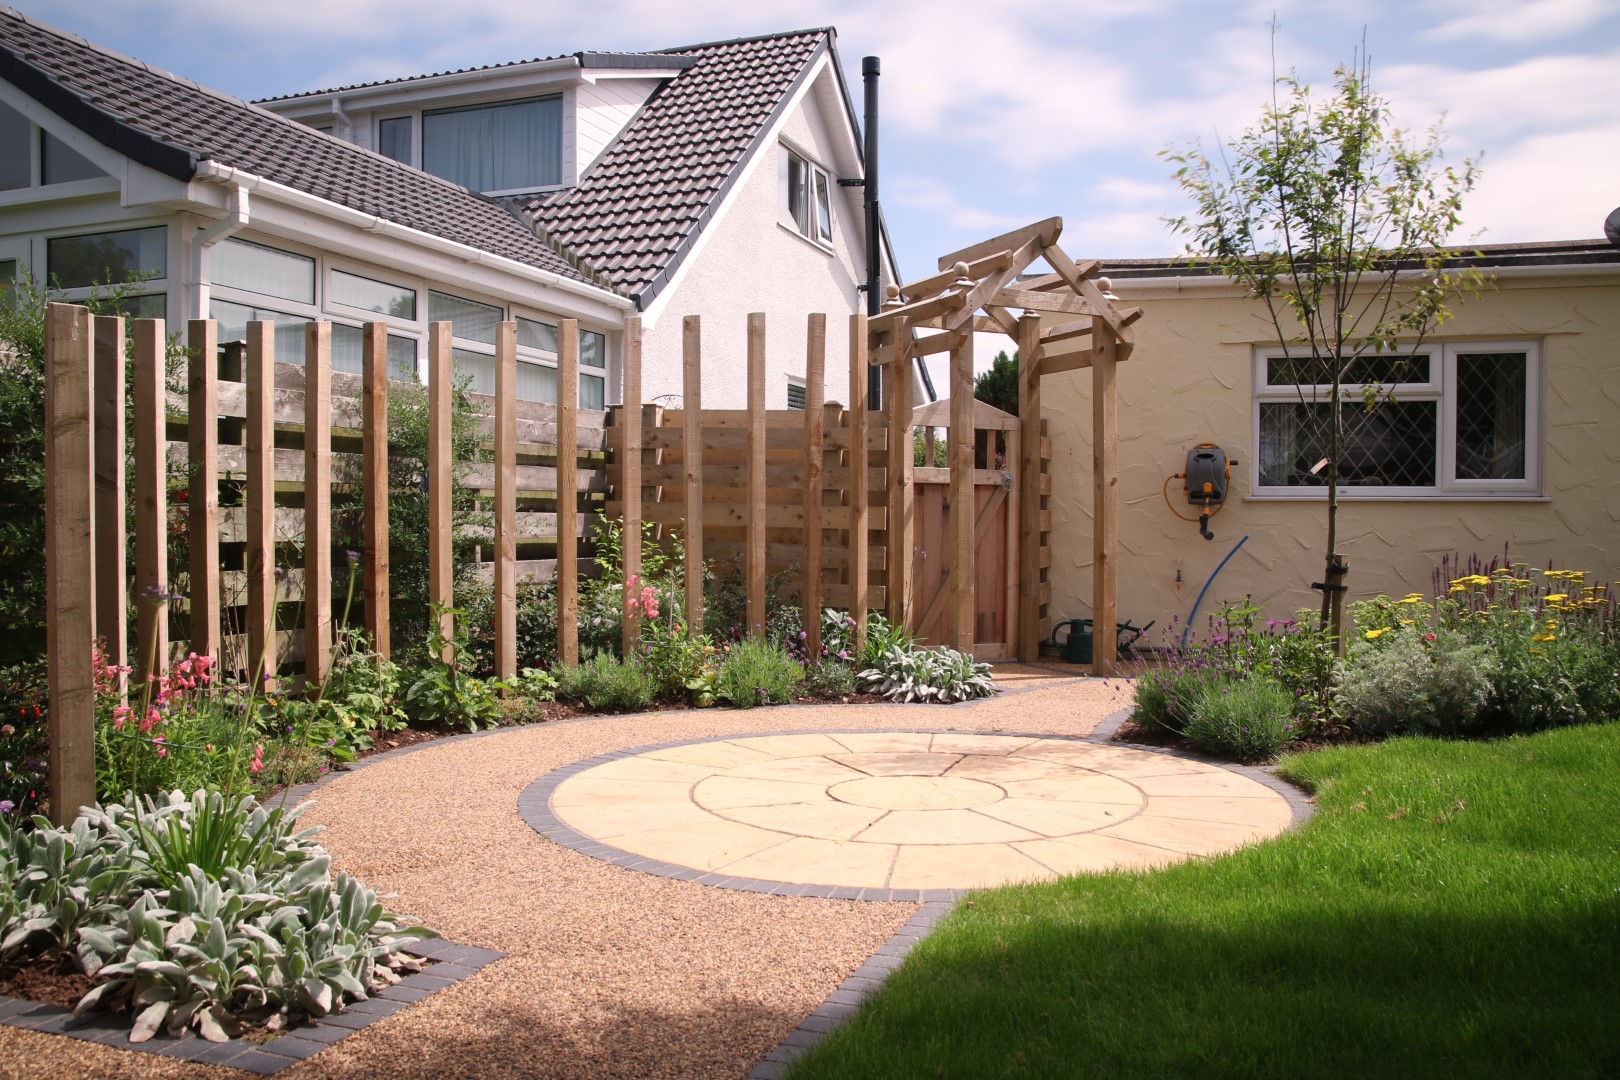 Circular paving and curved timber feature surrounded by flowers and plants